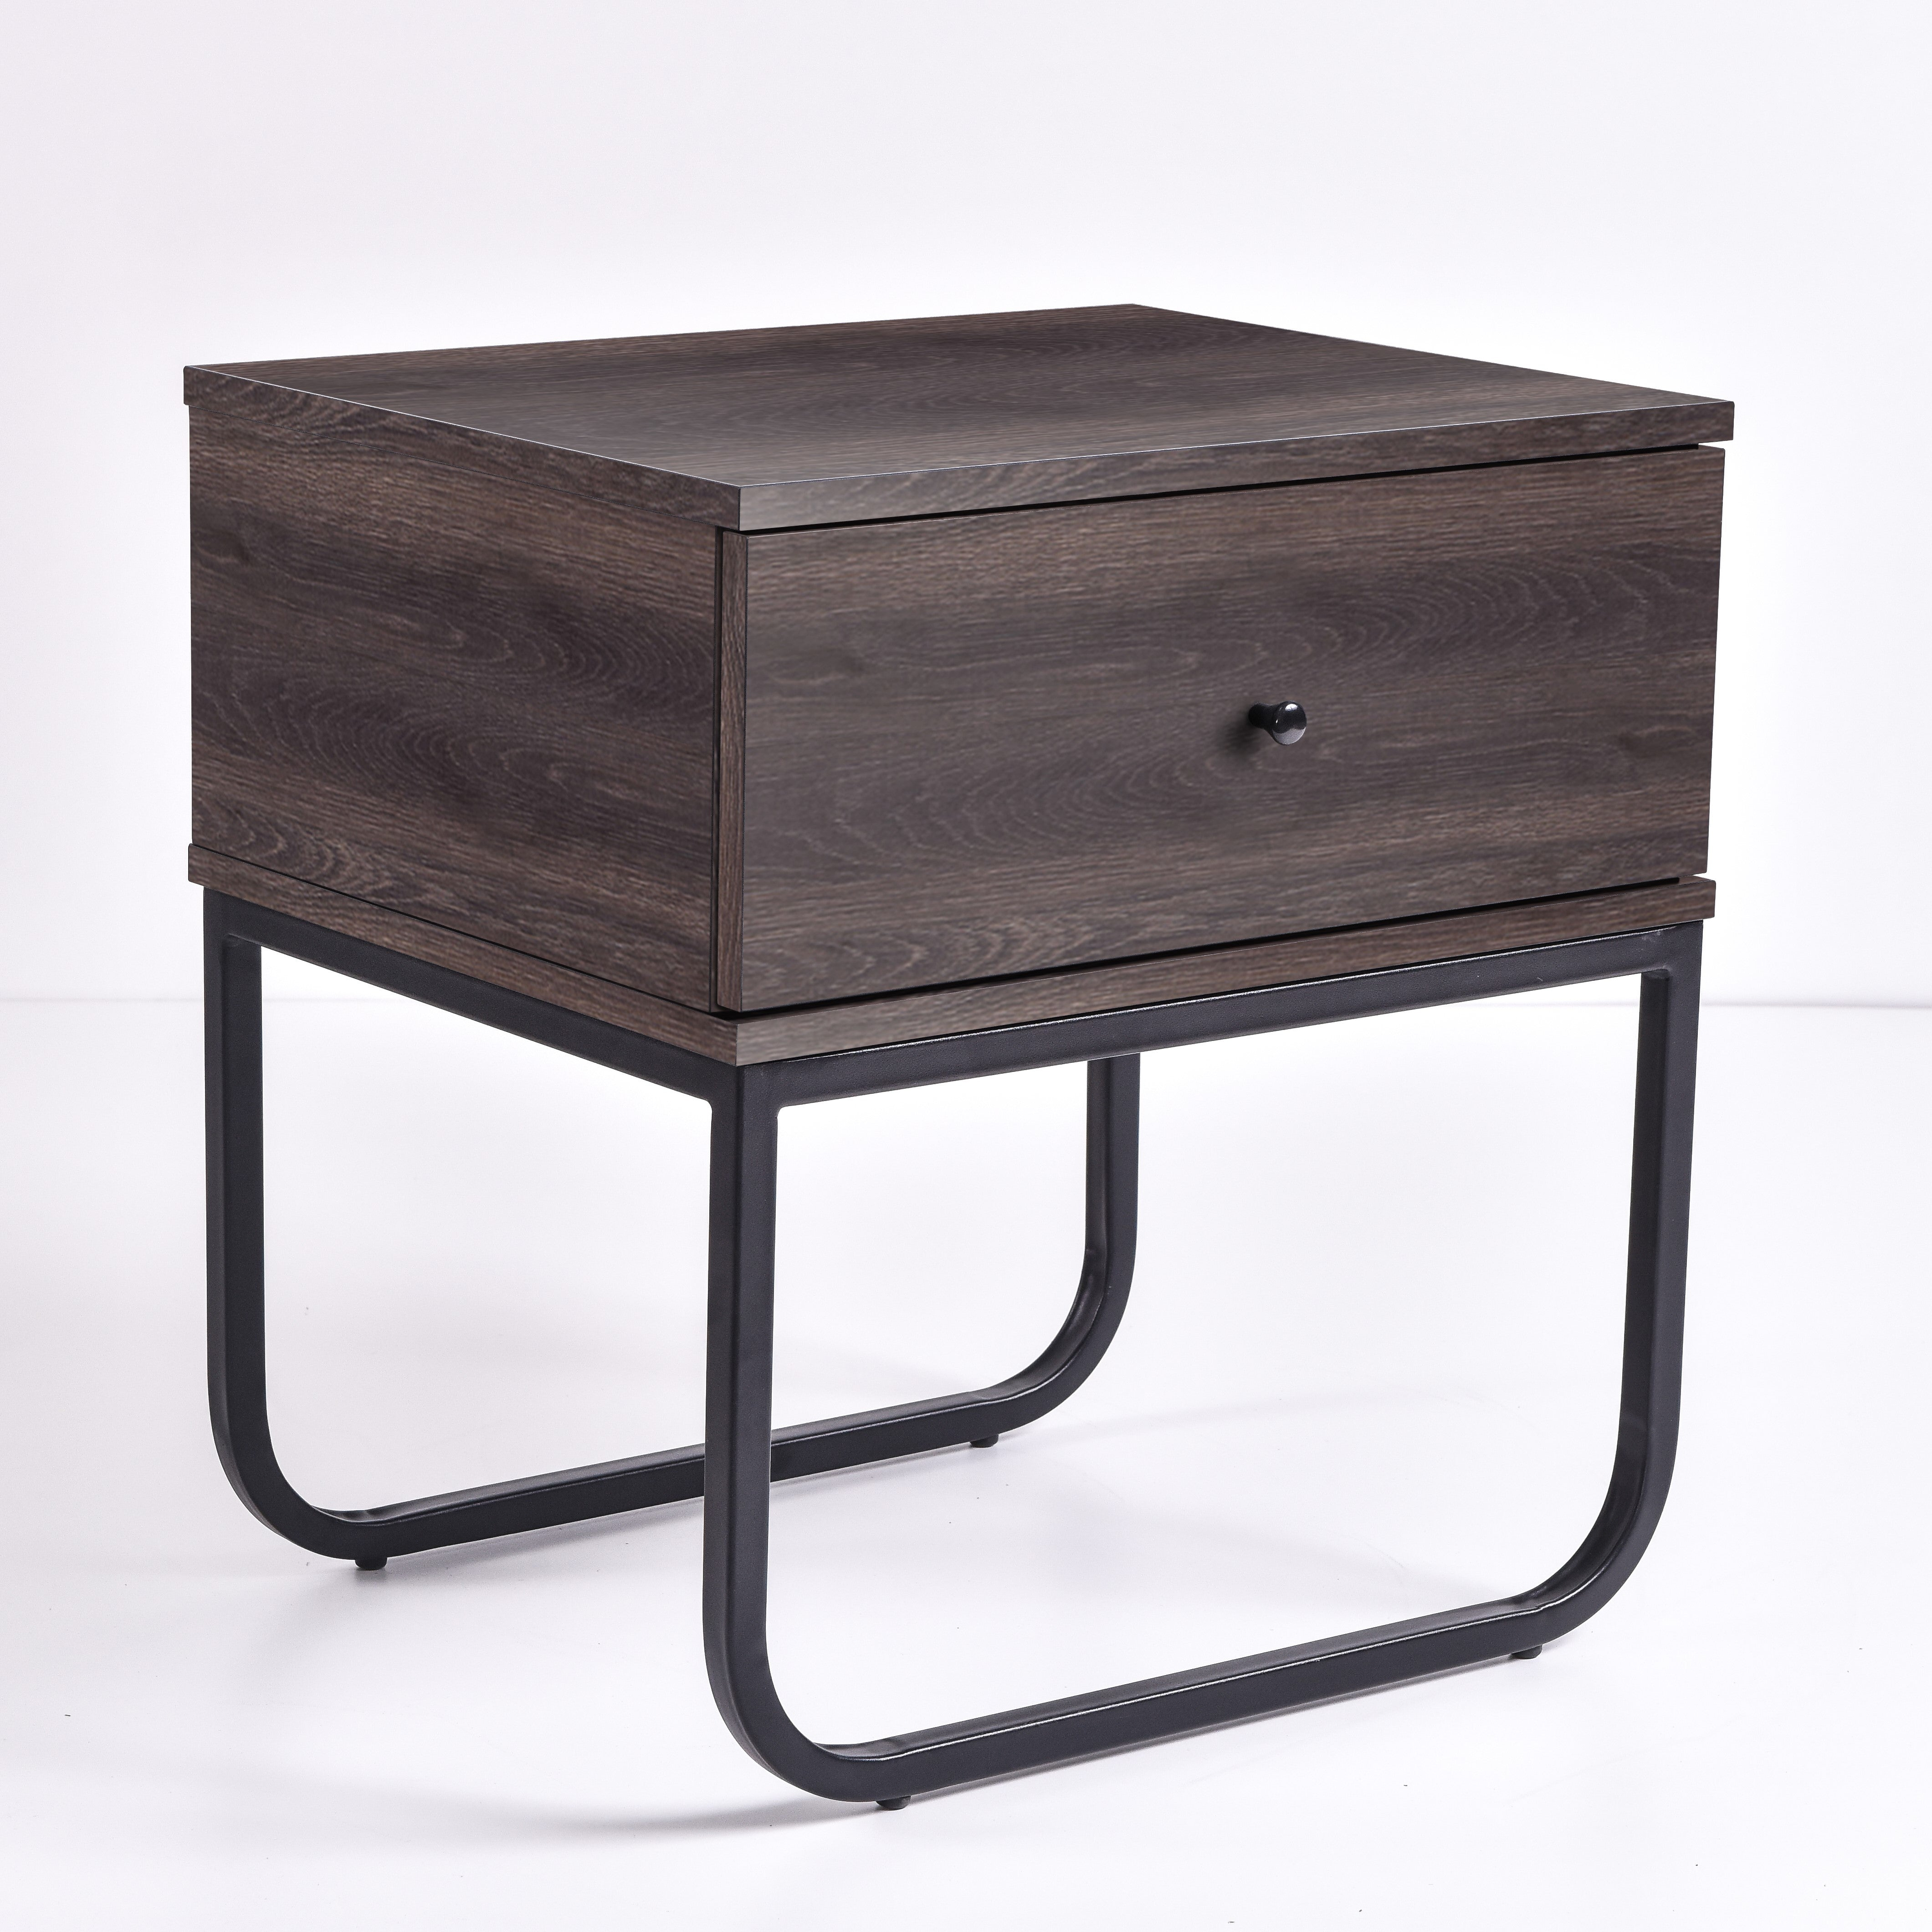 Mitra Bedside Table, Antico Wenge